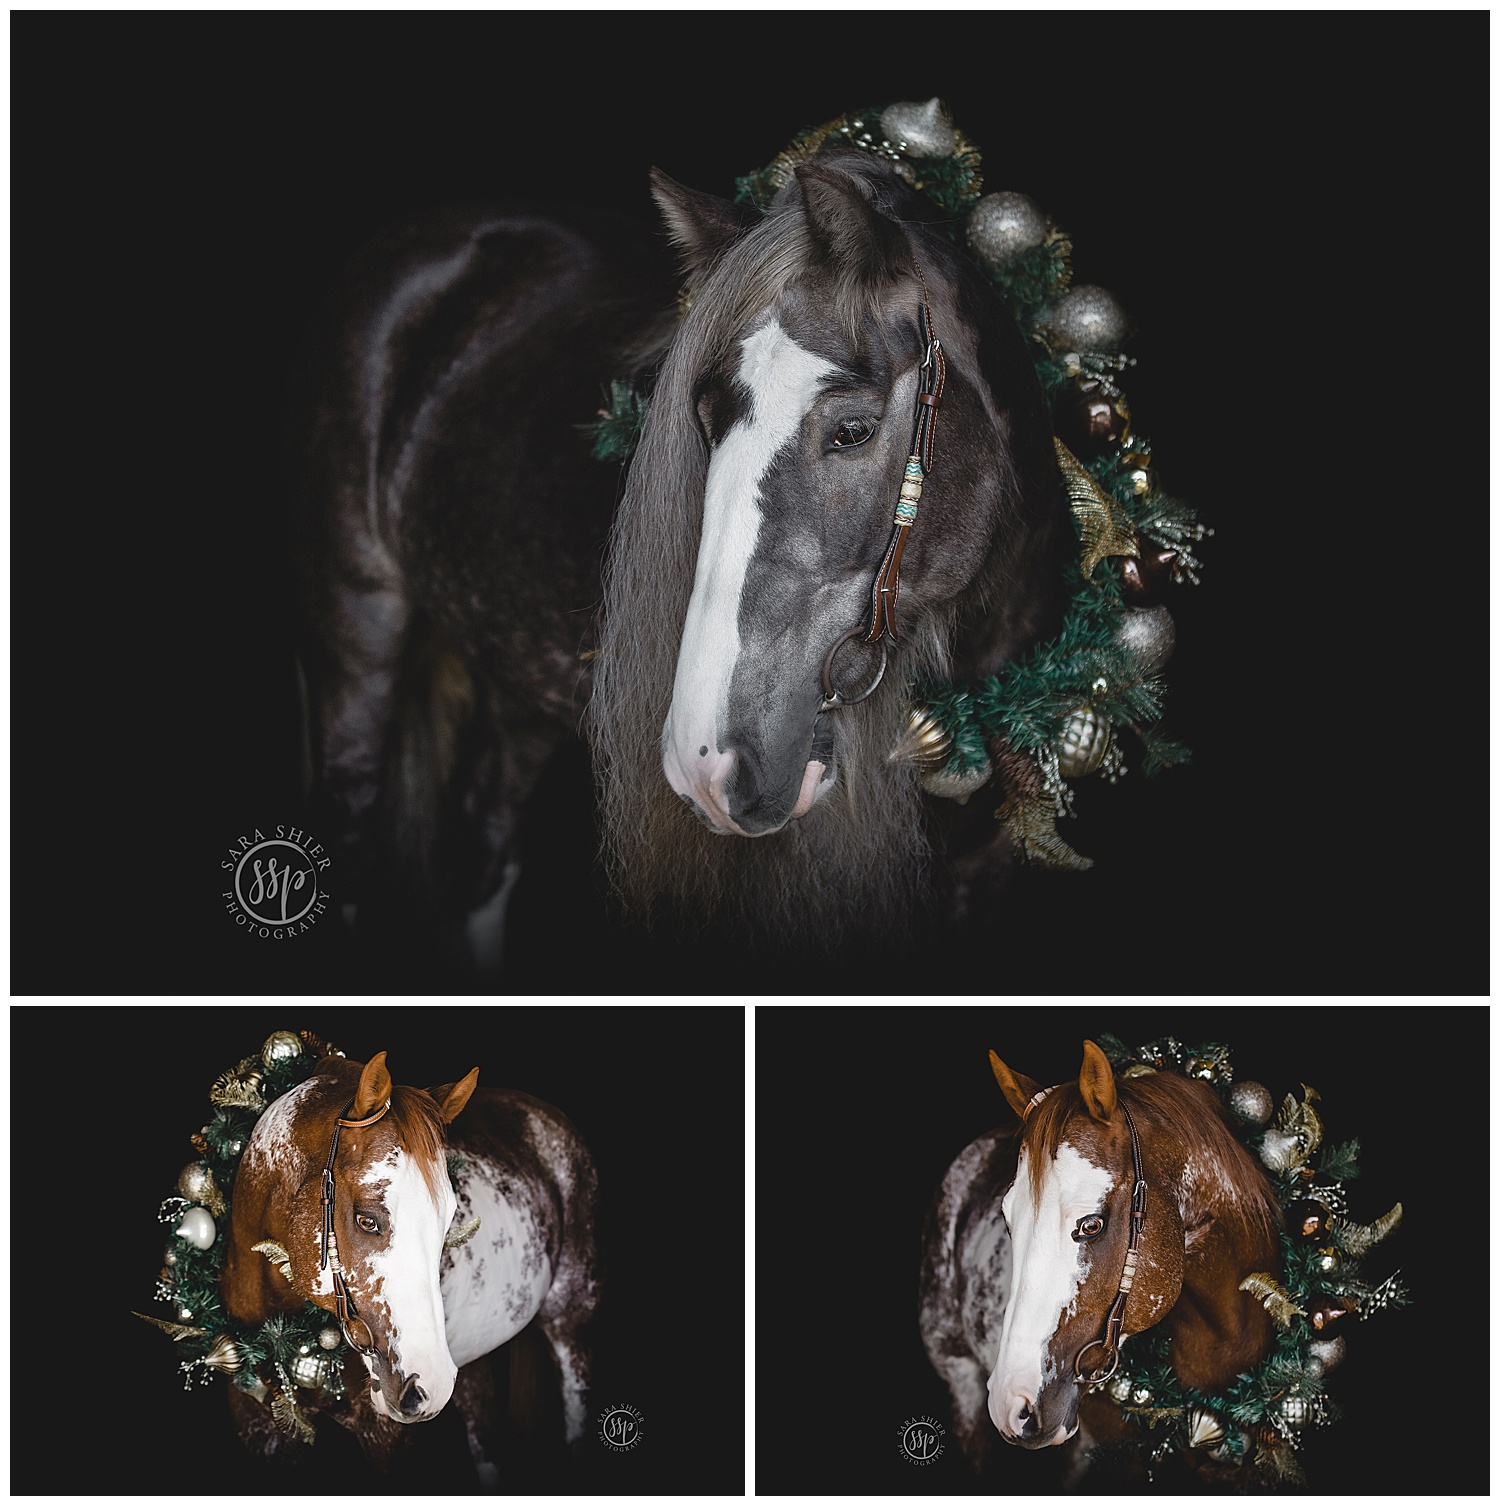 Black Background Horse Rider Equine Photographer Southern California Sara Shier Photography SoCal Equestrian Cowgirl_0157.jpg